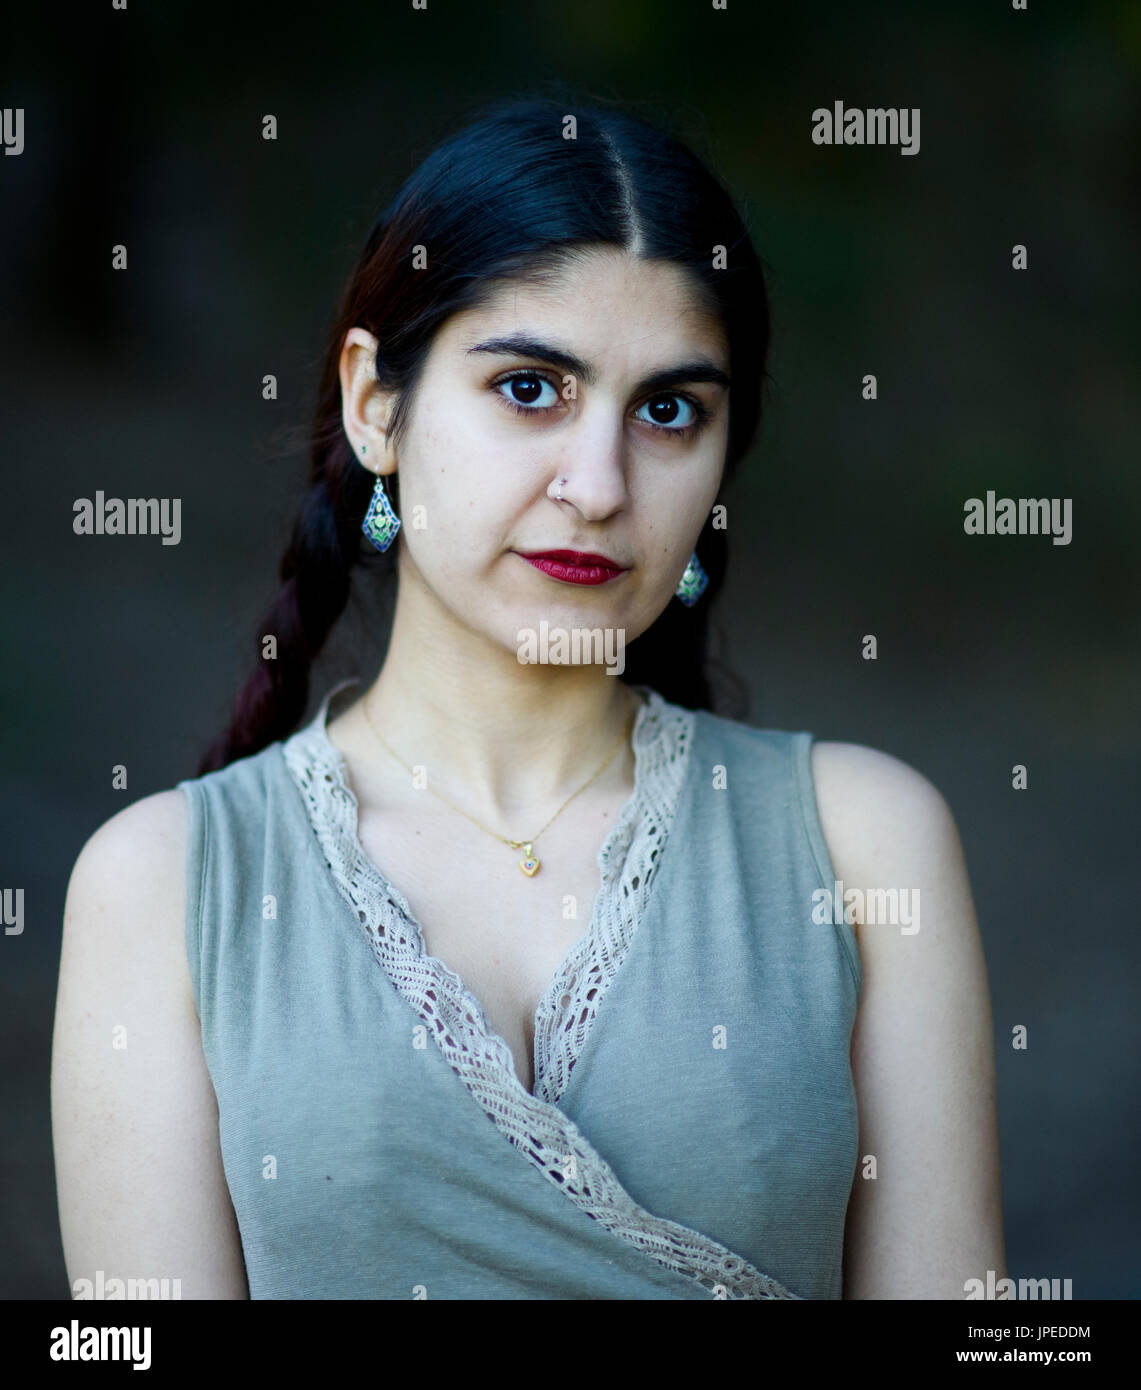 Young Persian Woman poses for photos in a Park - Stock Image